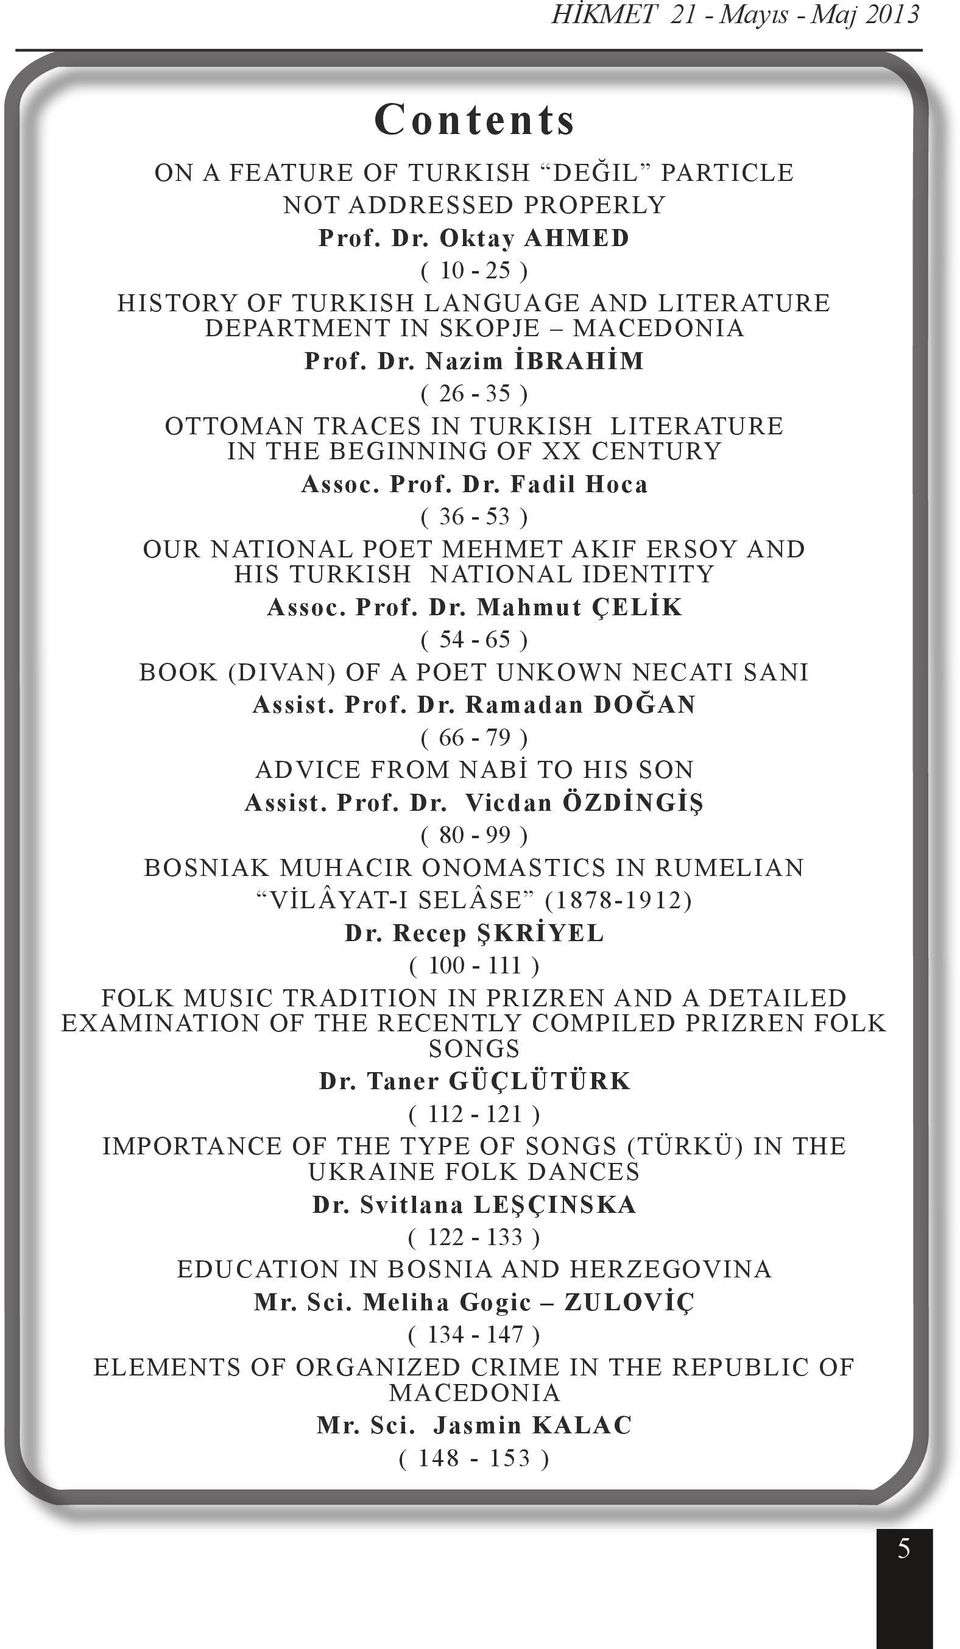 Nazim İBRAHİM ( 26-35 ) OTTOMAN TRACES IN TURKISH LITERATURE IN THE BEGINNING OF XX CENTURY Assoc. Prof. Dr.